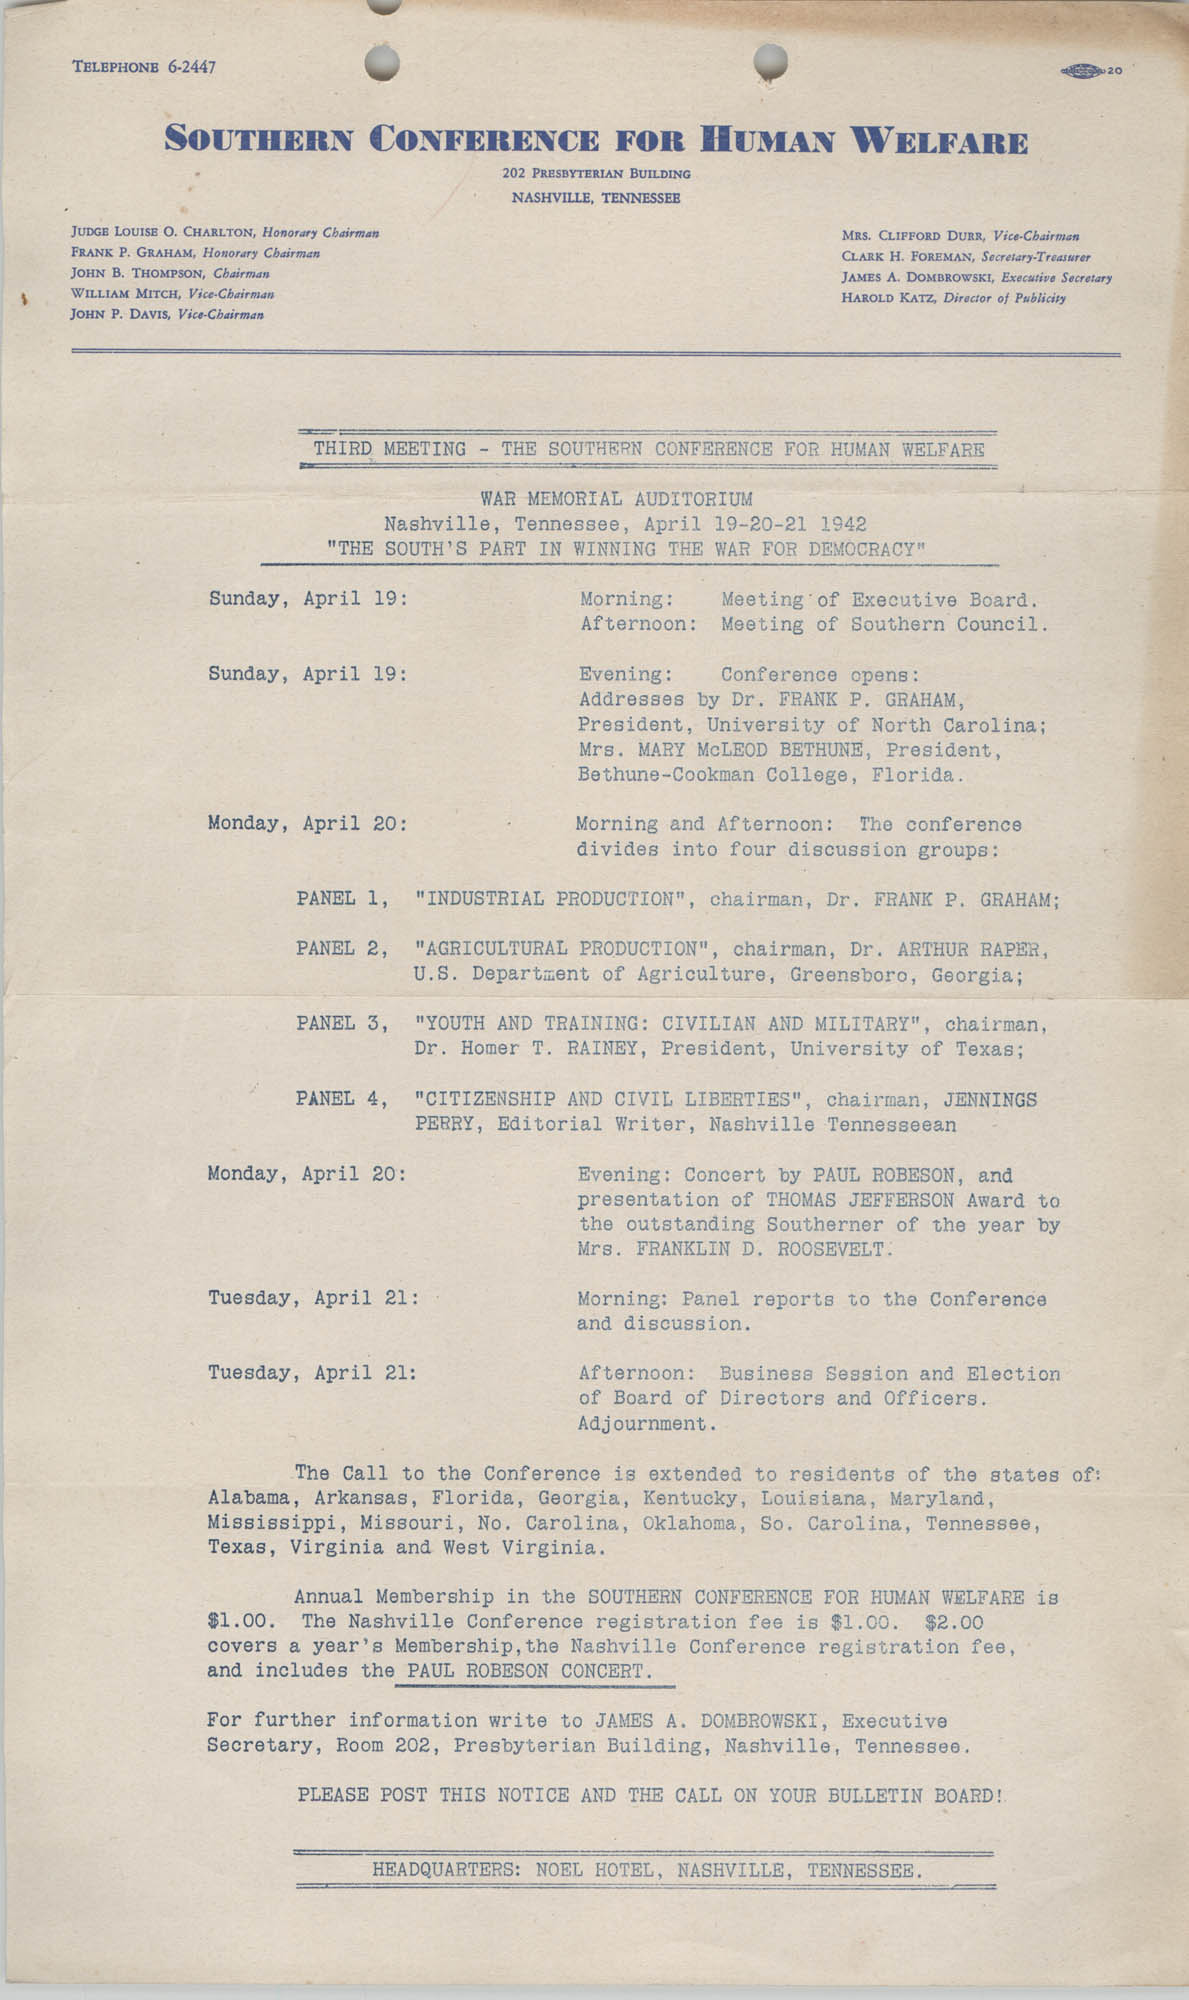 Southern Conference for Human Welfare Agenda, April 19-21, 1942